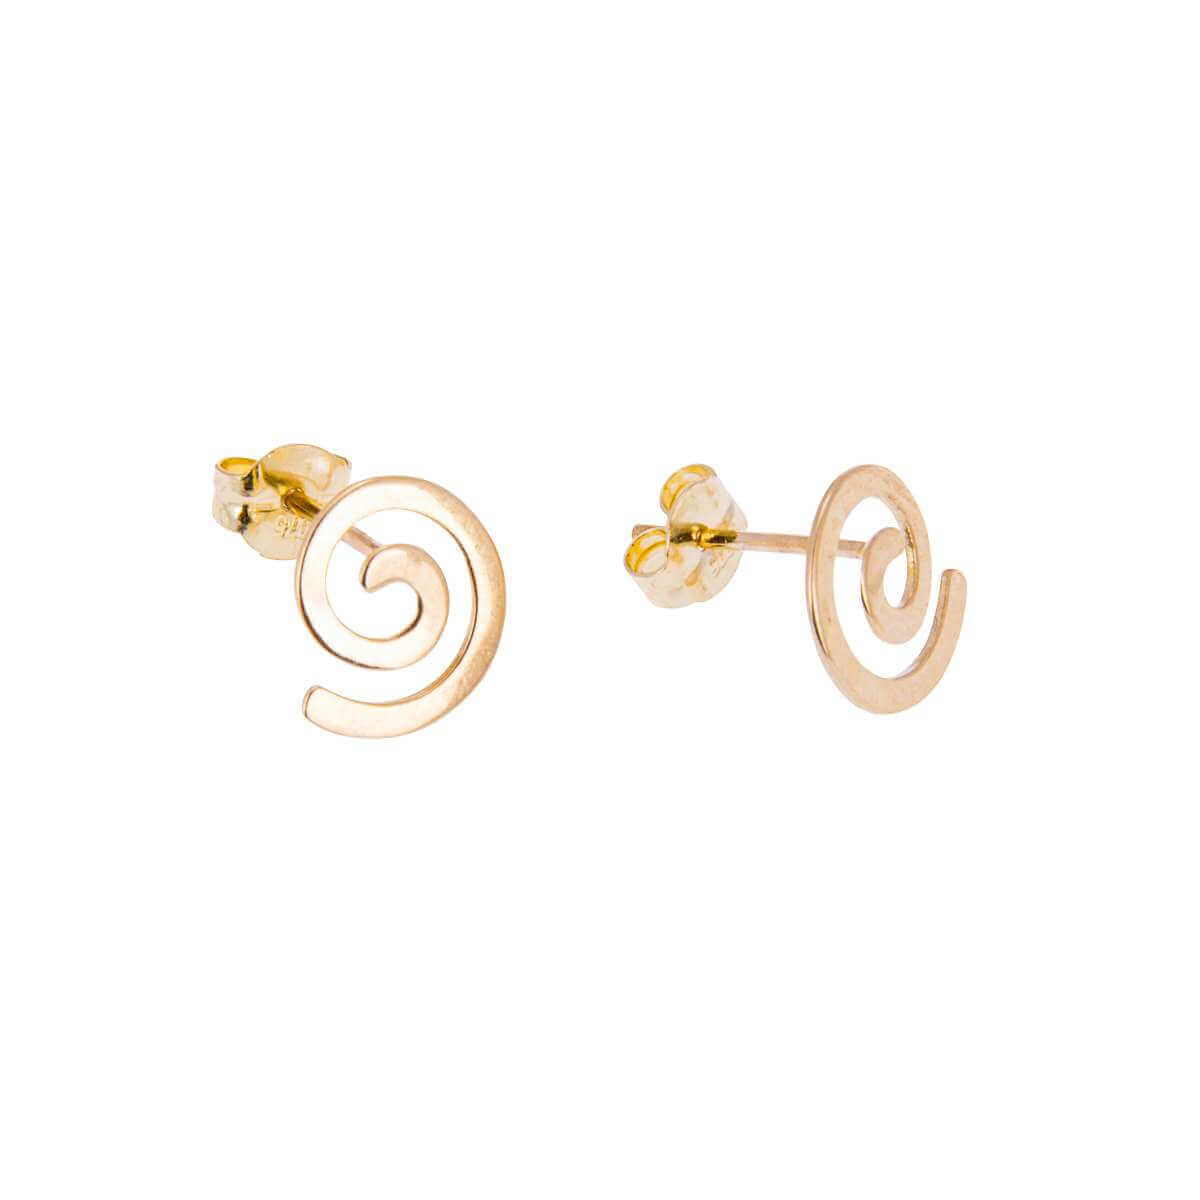 9ct Gold Spiral Stud Earrings